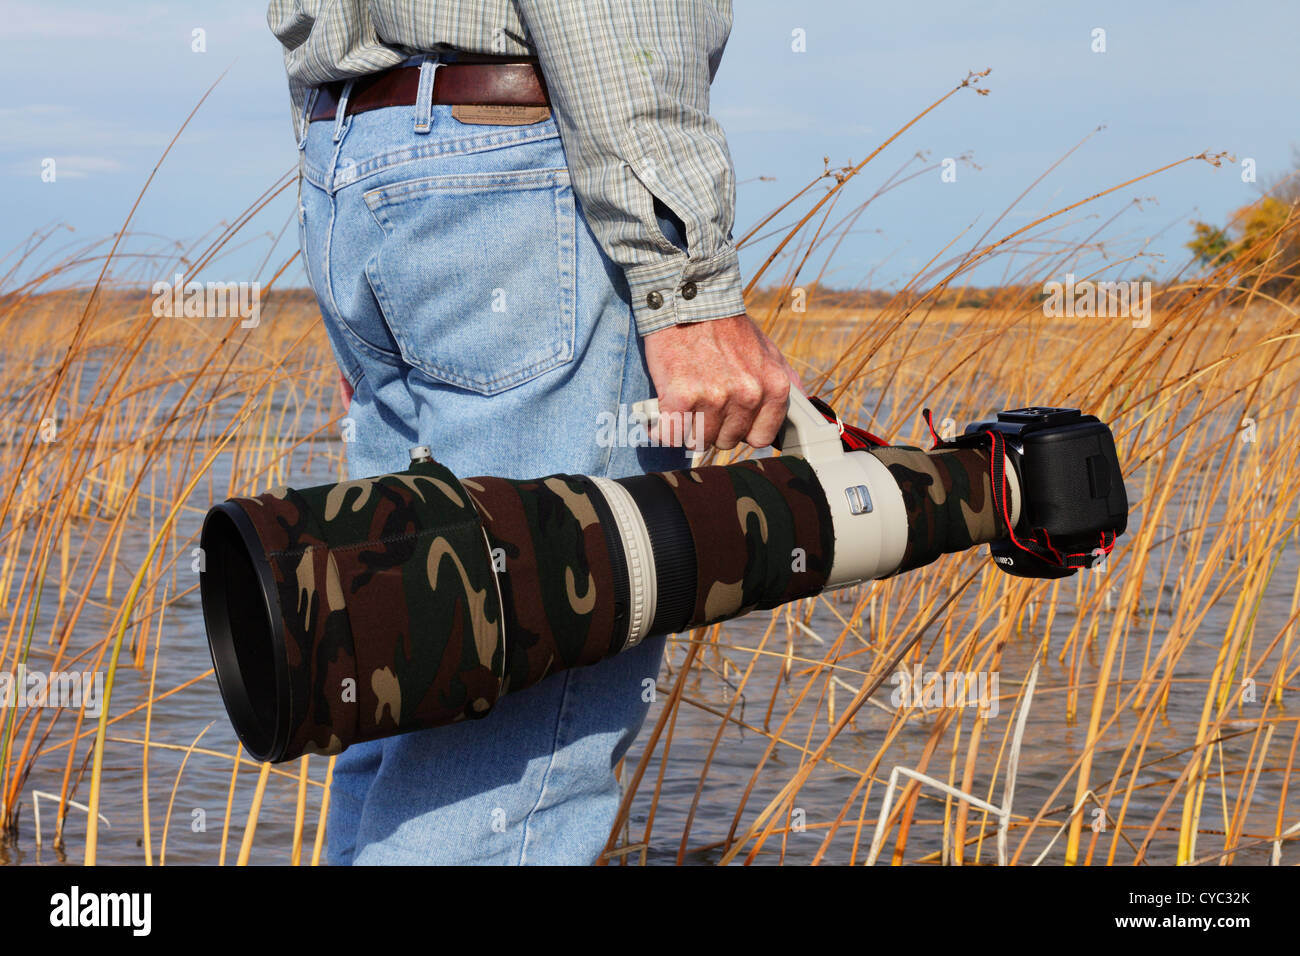 Professional photographer carrying a camouflaged Canon super telephoto lens and DSLR. - Stock Image